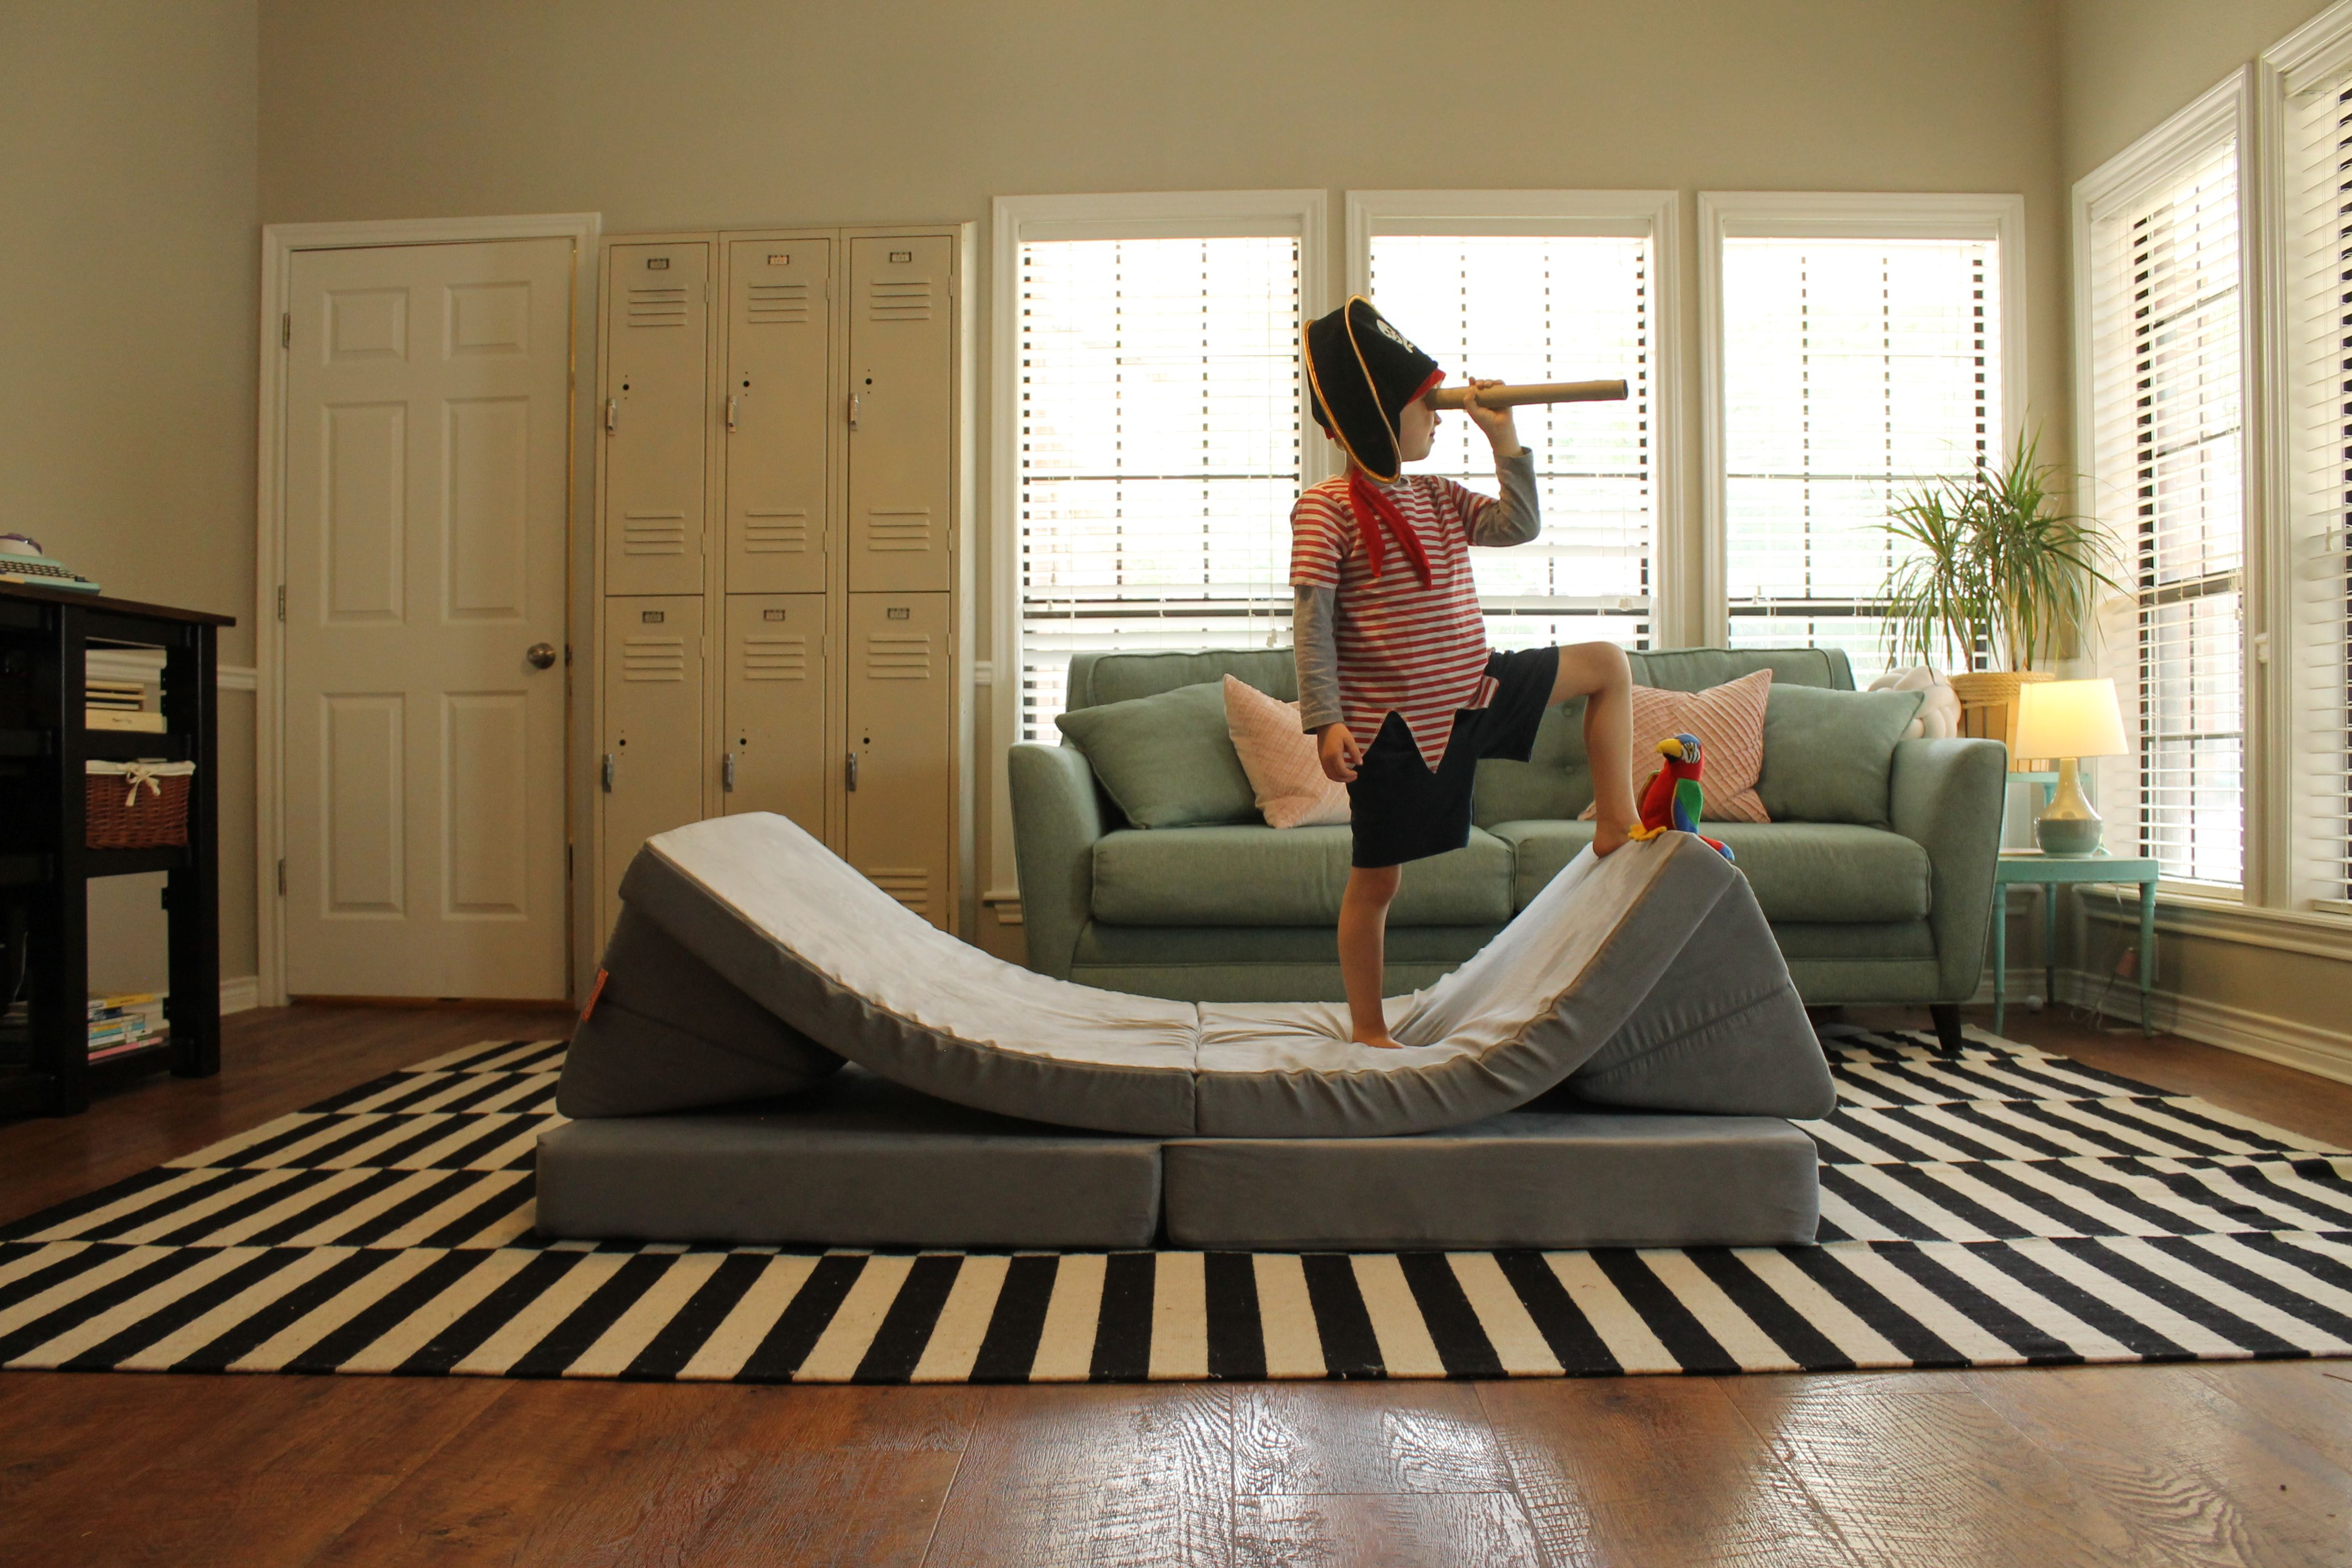 We love the Nugget Couch! You can make it into so many fun ...